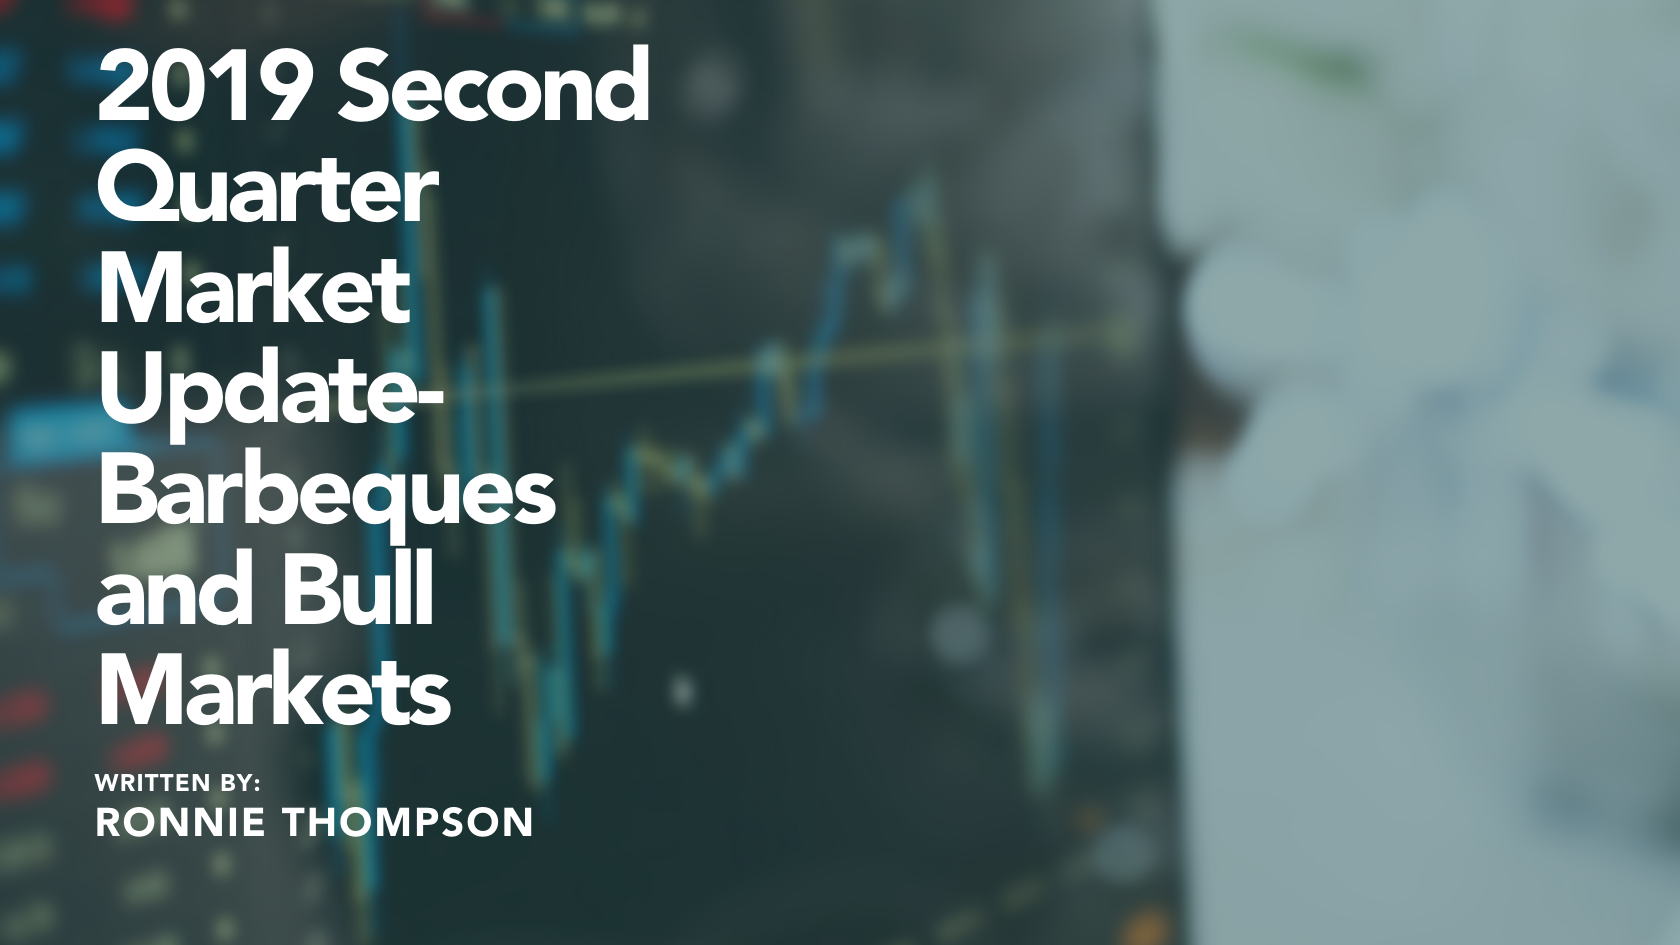 2019 Second Quarter Market Update- Barbeques and Bull Markets Thumbnail